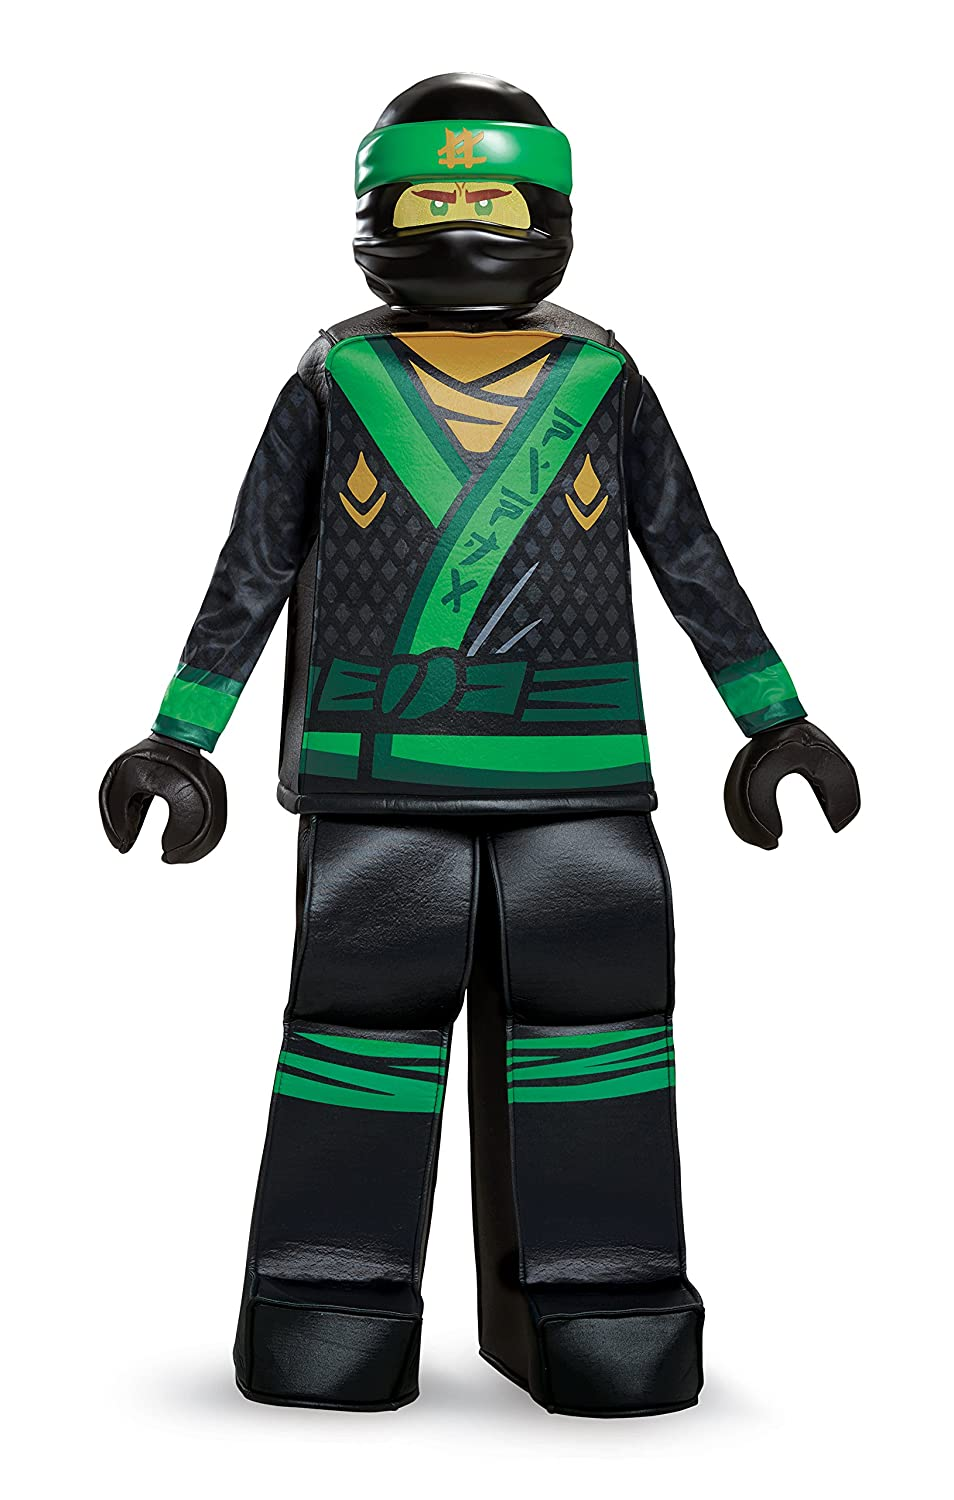 Lloyd LEGO Ninjago Movie Prestige Costume, Green, Medium (7-8)